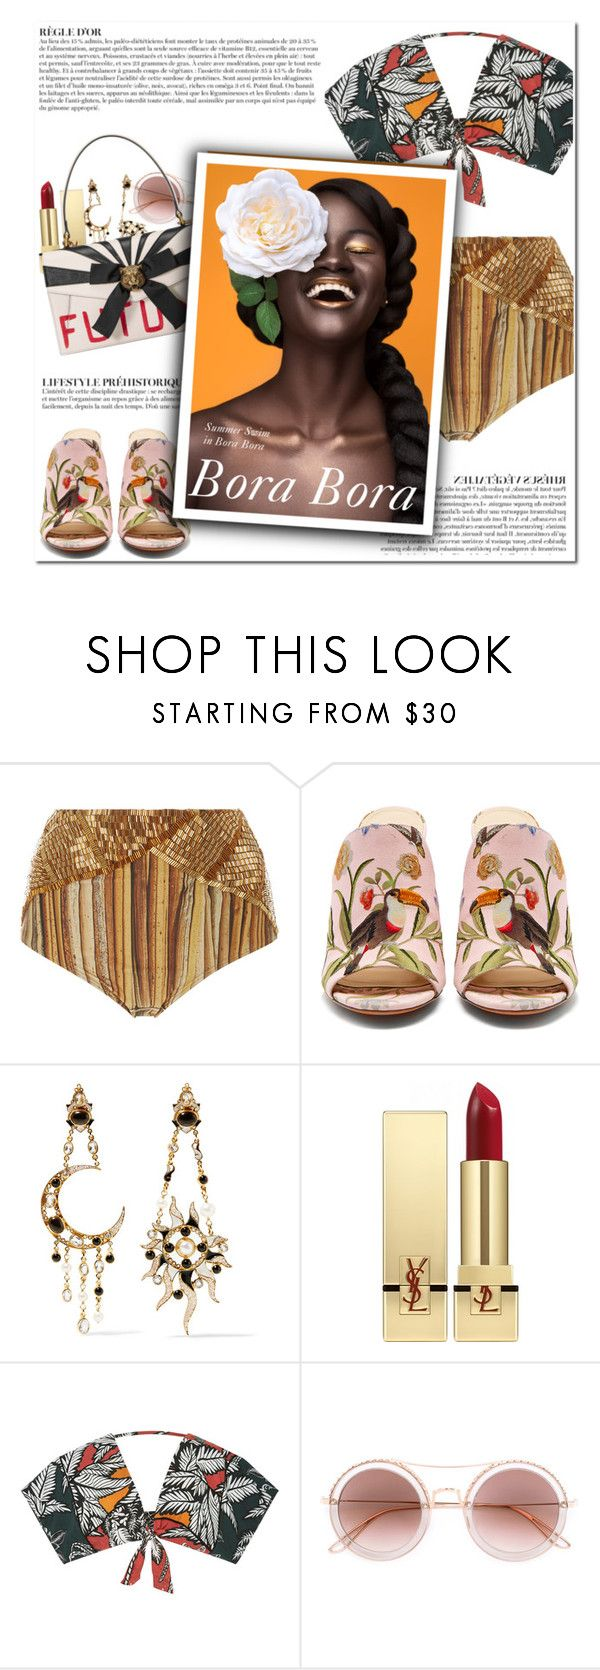 """""""How to Style Metallic Gold Bikini Bottoms with a Tropical Print Crop Top, Pink Mules and a Black and White Gucci Bag"""" by outfitsfortravel ❤ liked on Polyvore featuring Água de Coco, Aquazzura, Diego Percossi Papi, Yves Saint Laurent, Elie Saab, Anja and Gucci"""